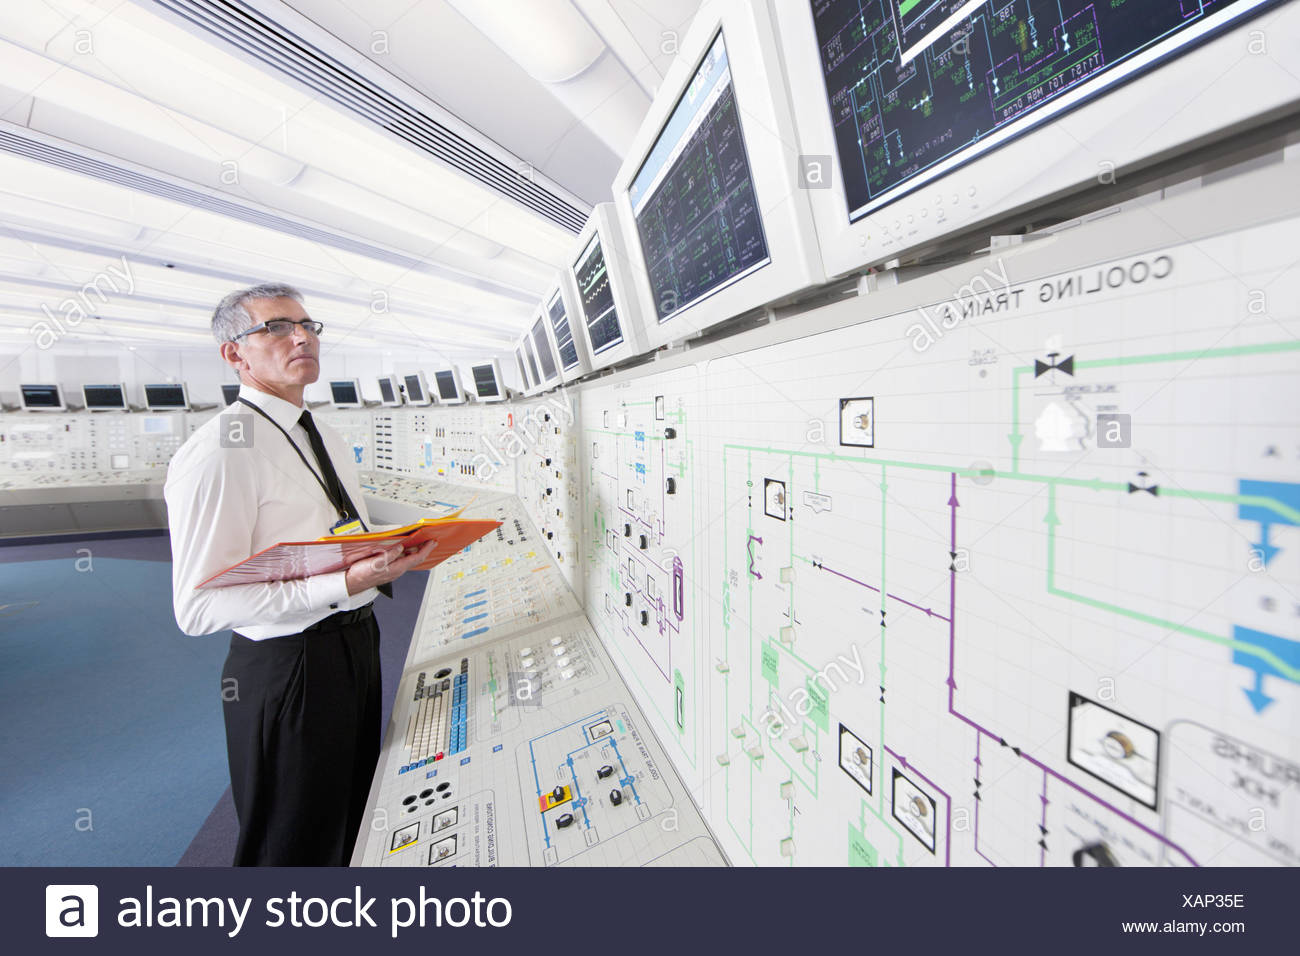 Engineer looking up at monitors in control room of nuclear power station Stock Photo